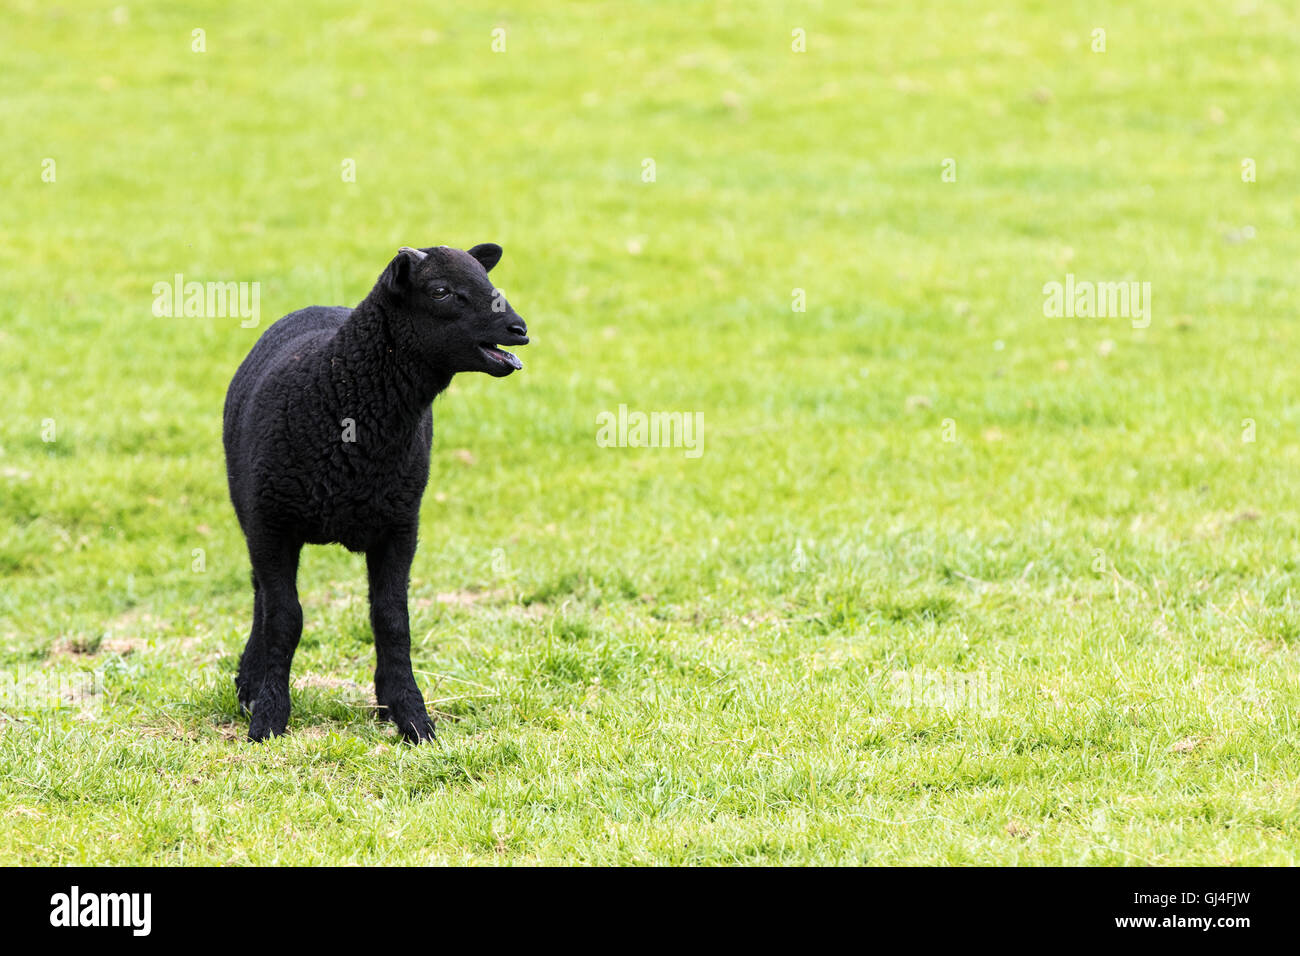 Young horned black lamb bleating, calling to its mother and staring to the right - Stock Image